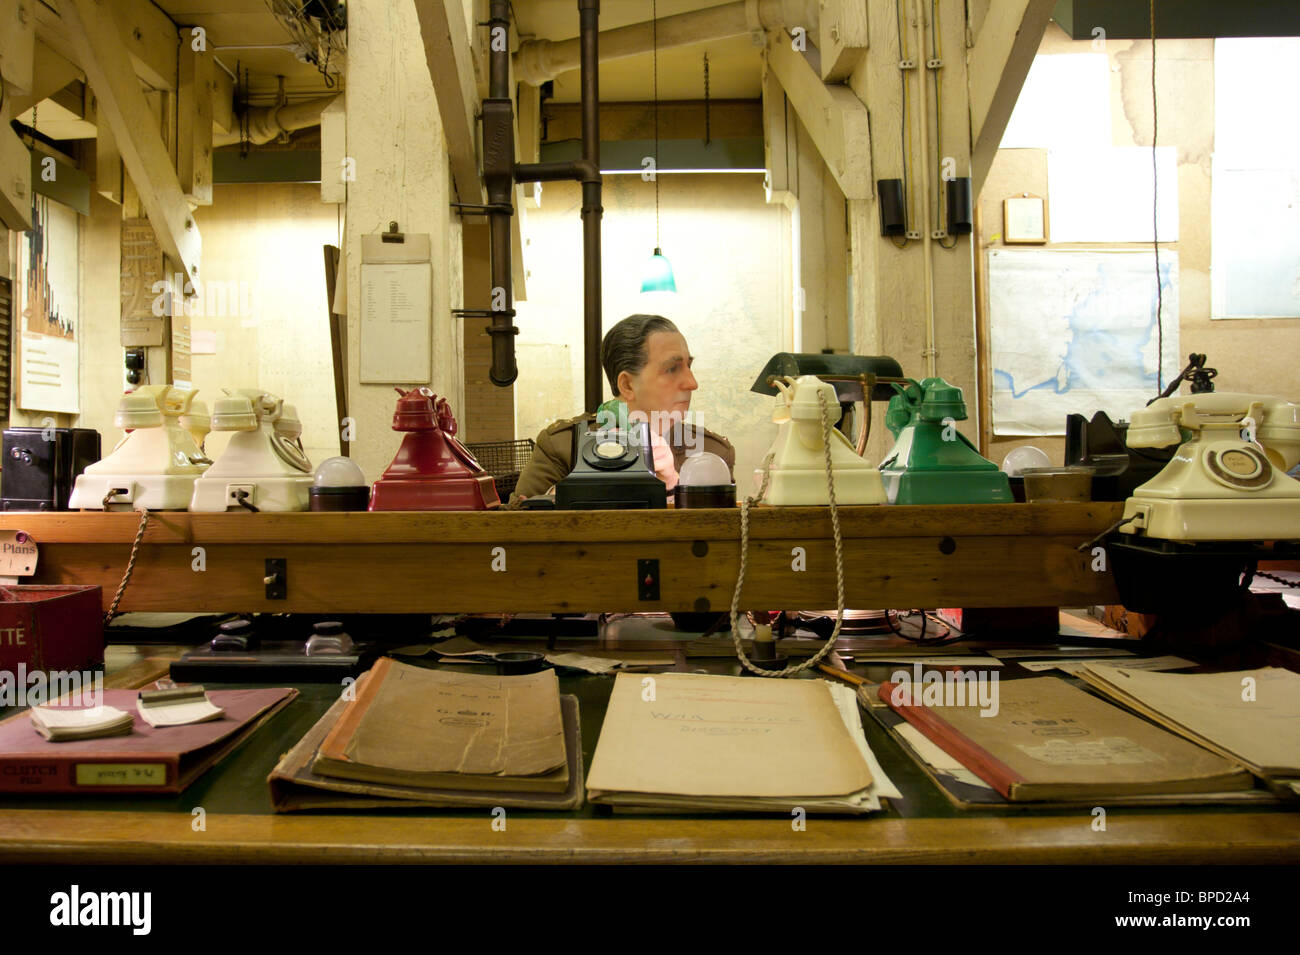 The Map Room - Churchill War Rooms (formally, Cabinet War Rooms) - Whitehall - London - Stock Image